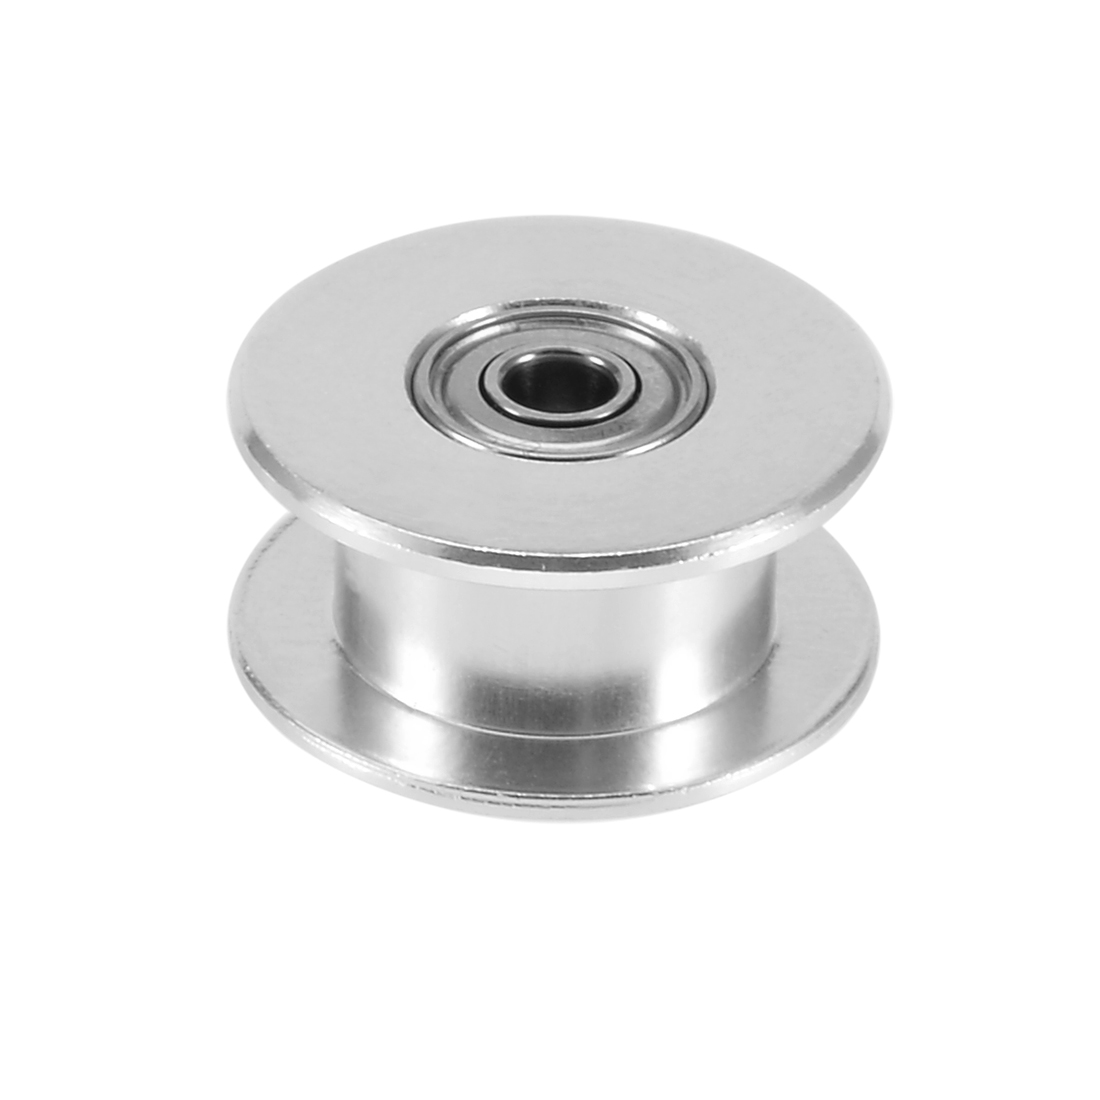 3D Printer Aluminum GT2 3mm Bore Timing Idler Pulley Flange with Ball Bearings for 6mm Timing Belt